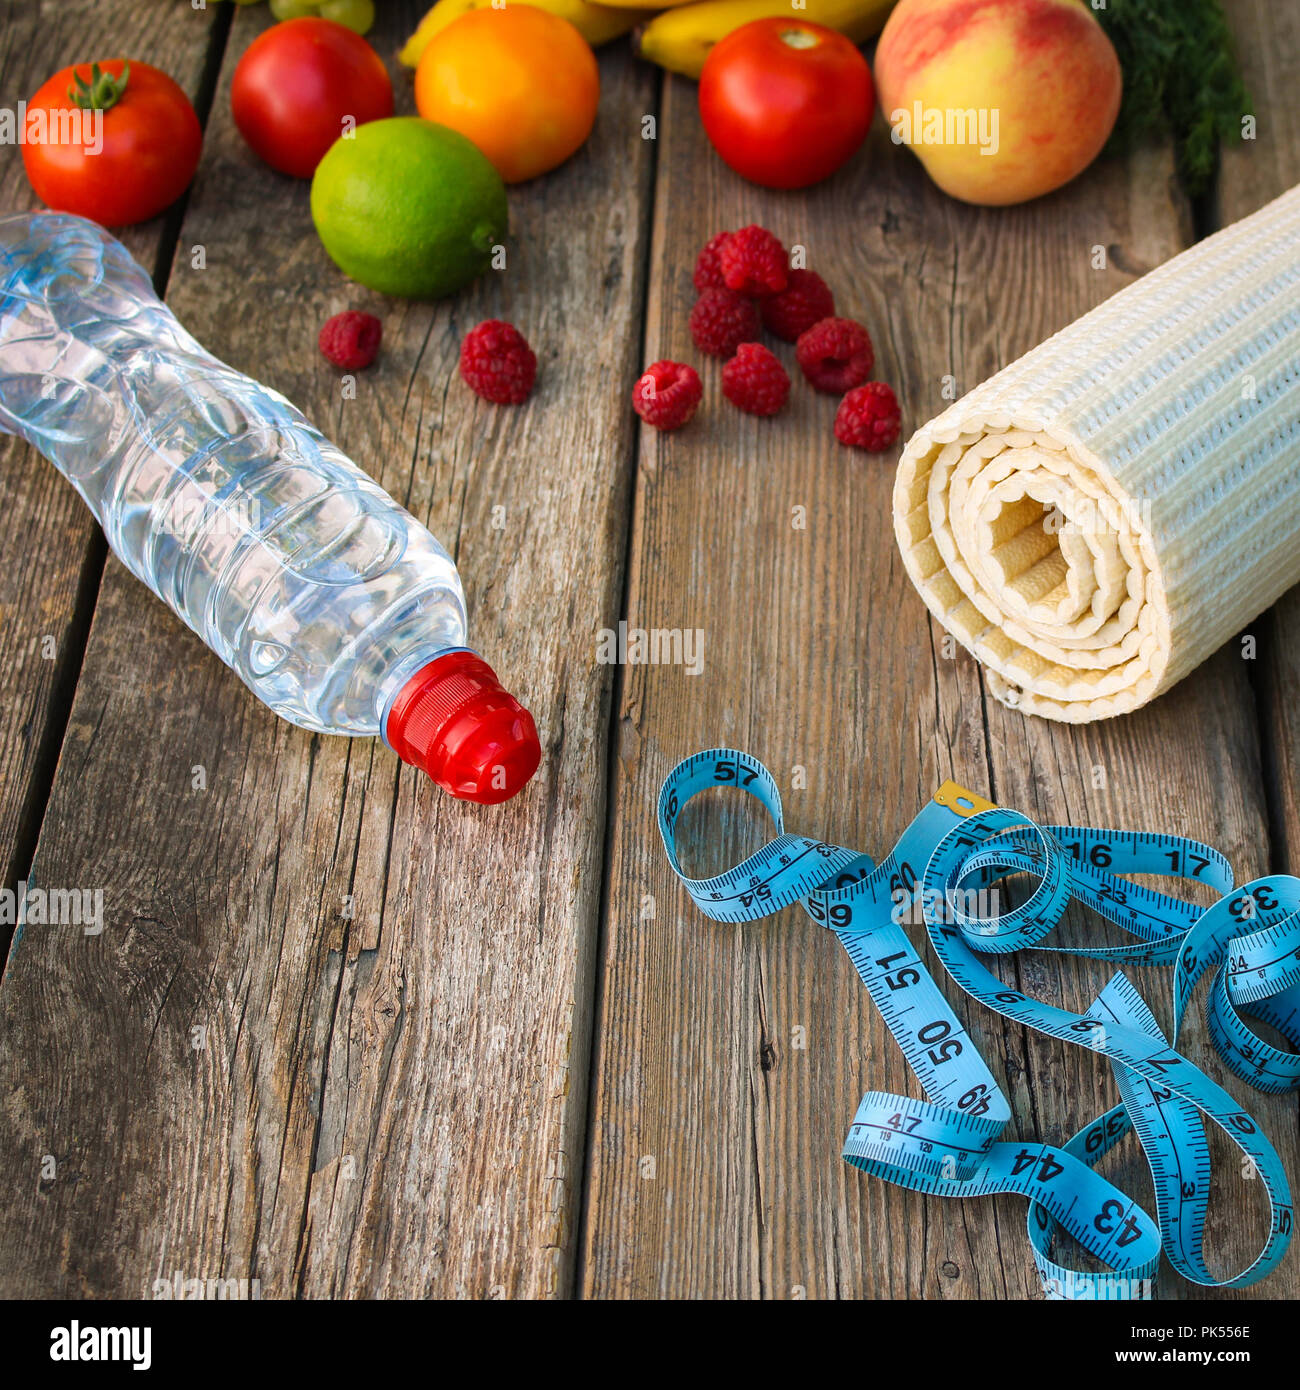 Fruits, vegetables, water, measurement tape and sports goods on wooden background. - Stock Image